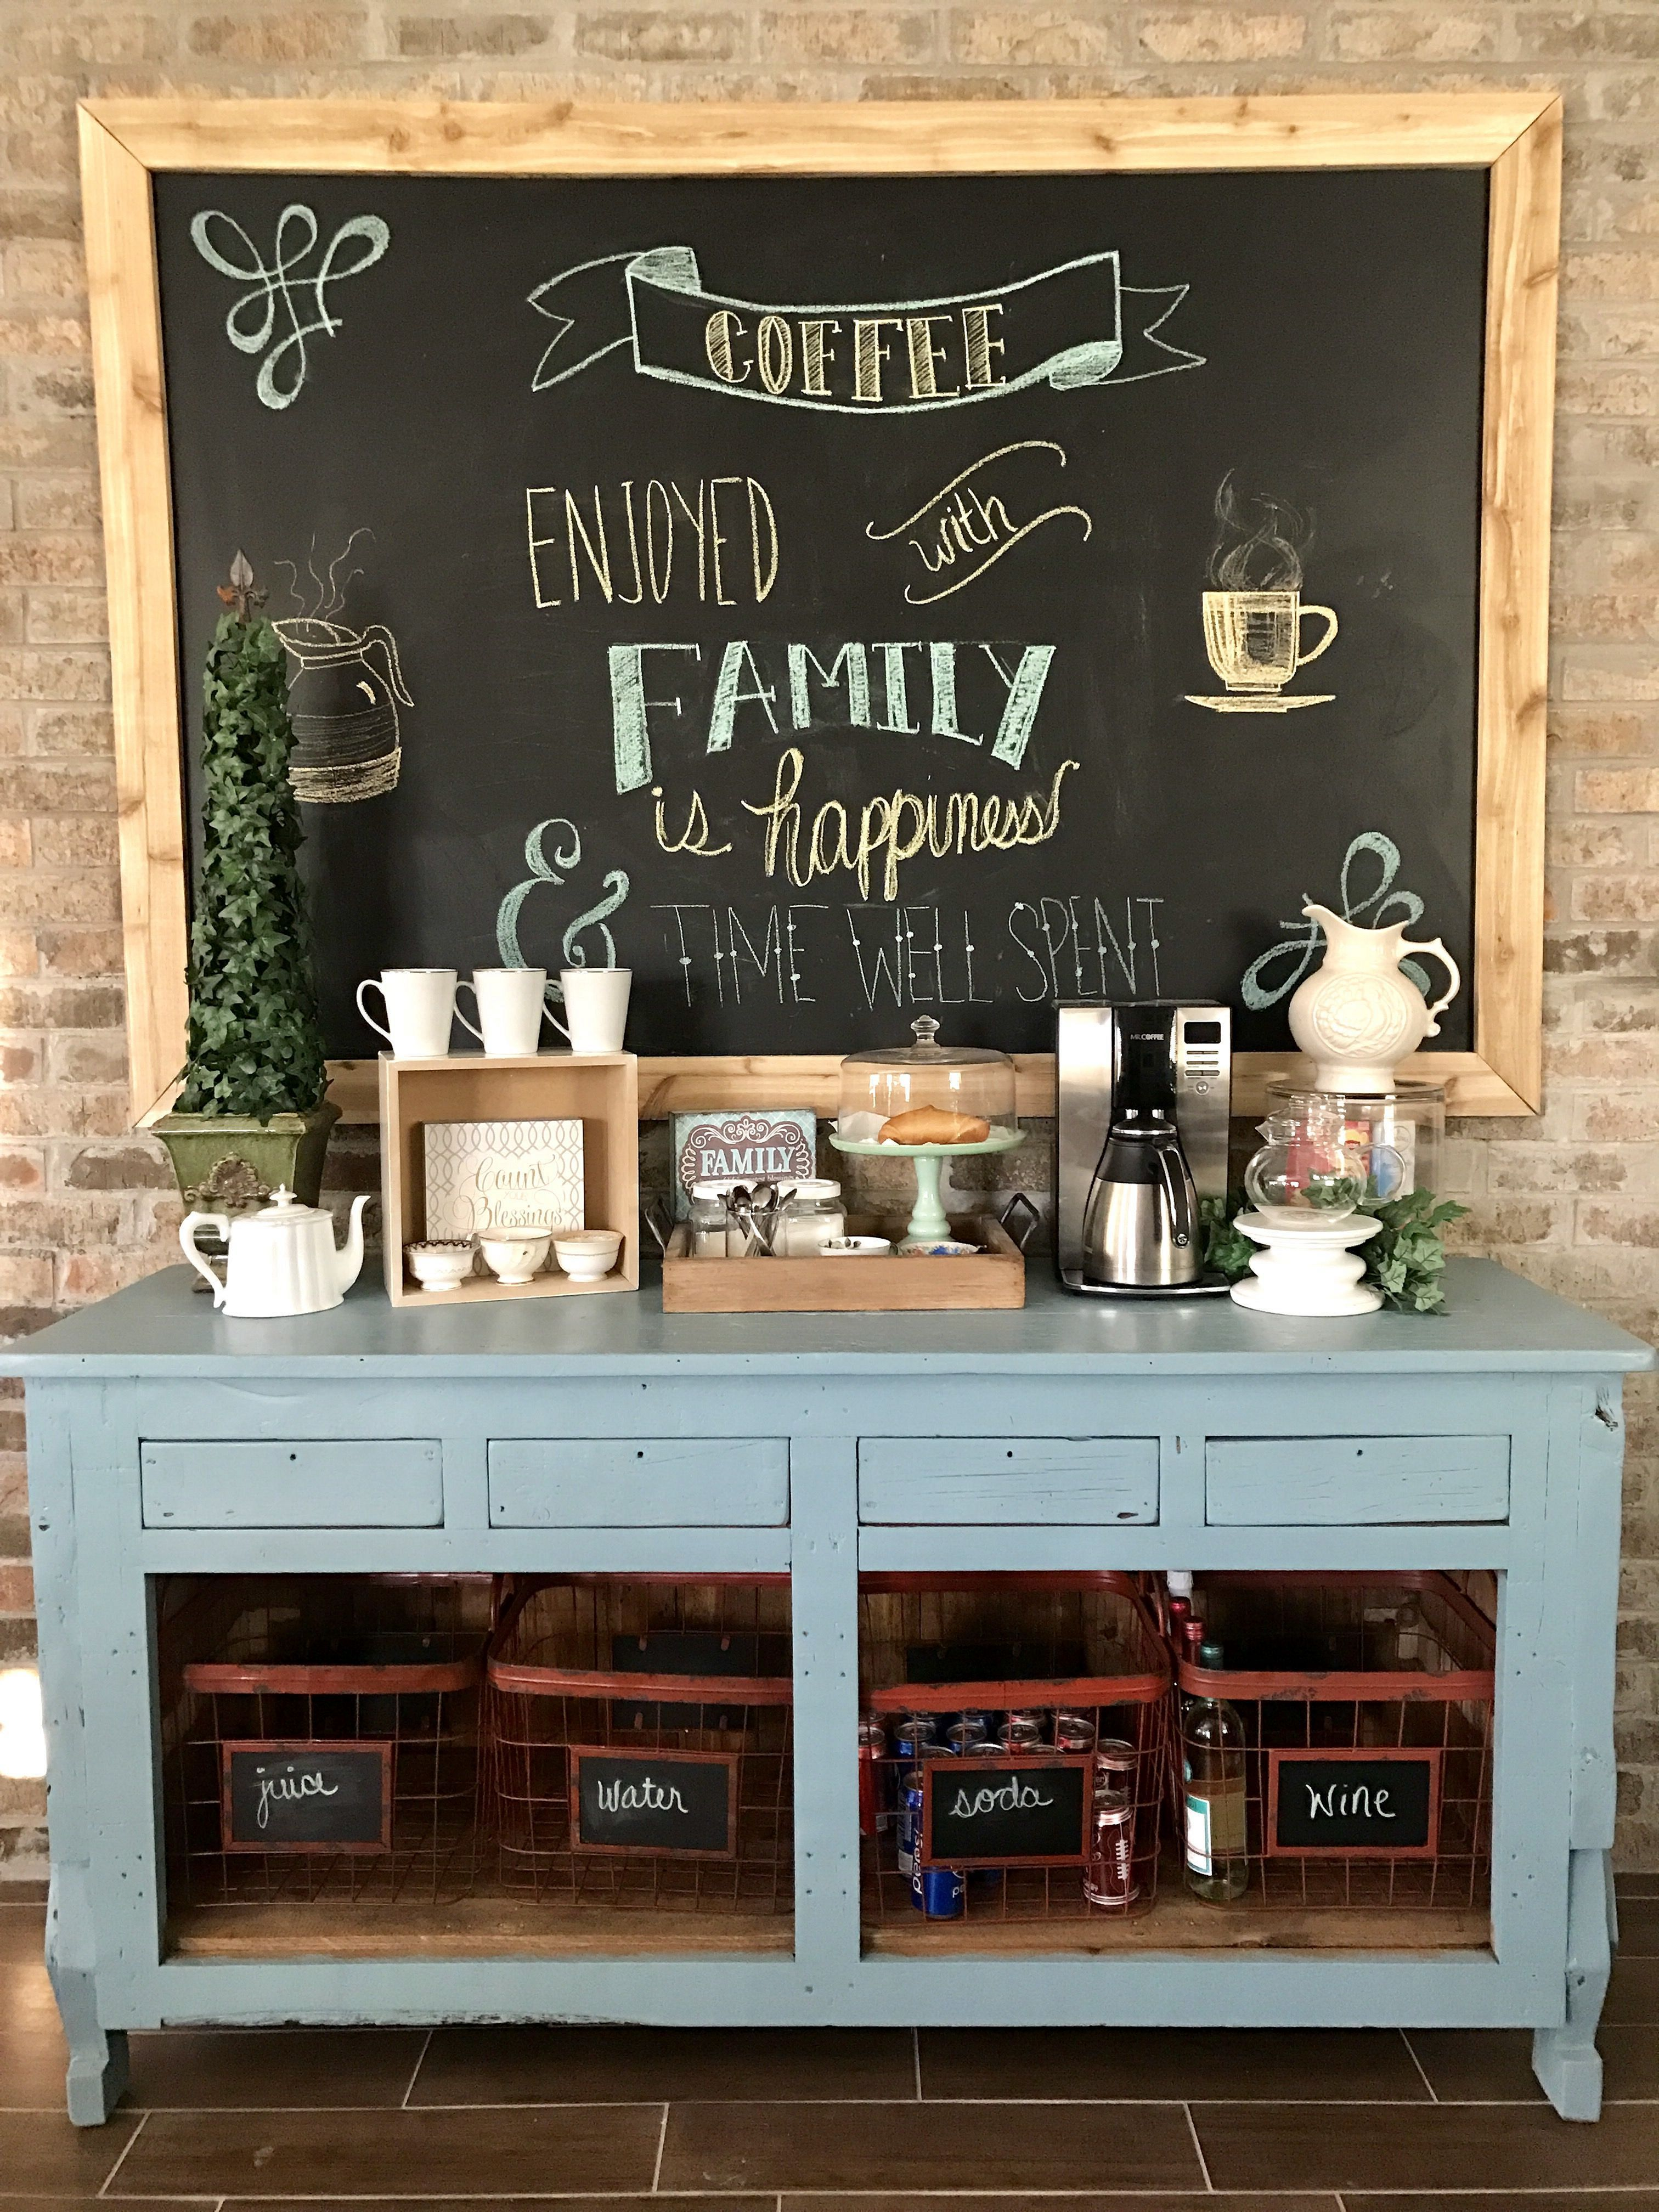 12 Best Home Coffee Bar Ideas That Look More Awesome At Your Home Coffeebarideas Homecoffe Diy Coffee Bar Diy Coffee Station Home Coffee Bar